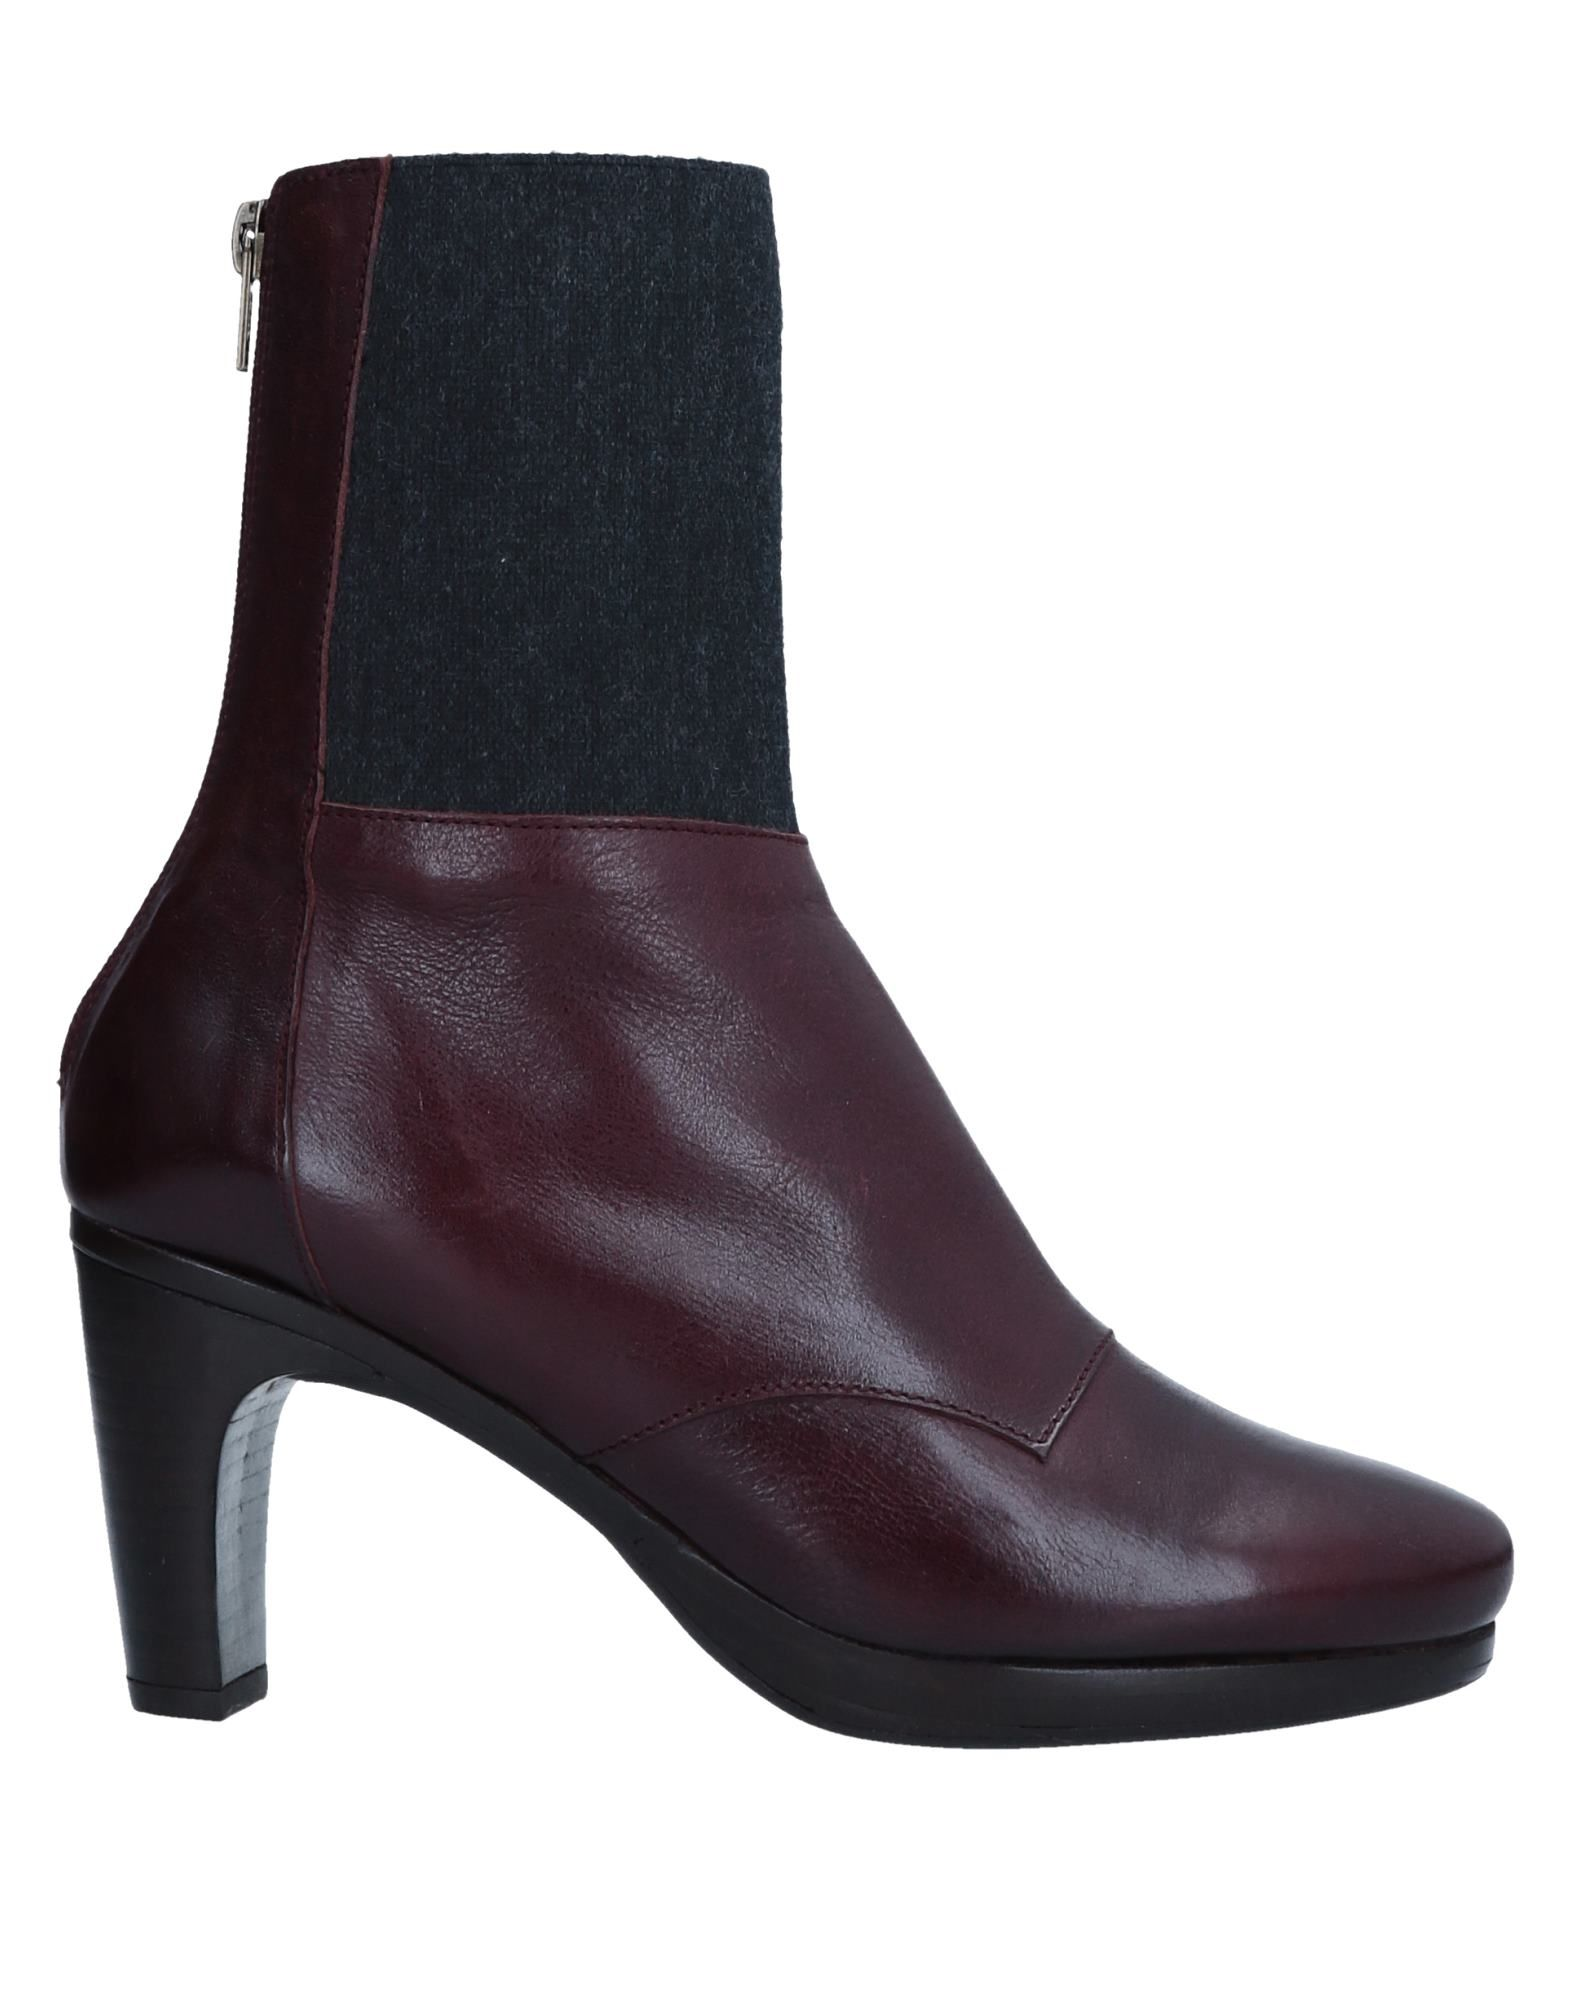 Bottine Anaid Kupuri Femme - Confortable Bottines Anaid Kupuri Bordeaux Confortable - et belle 50b1db